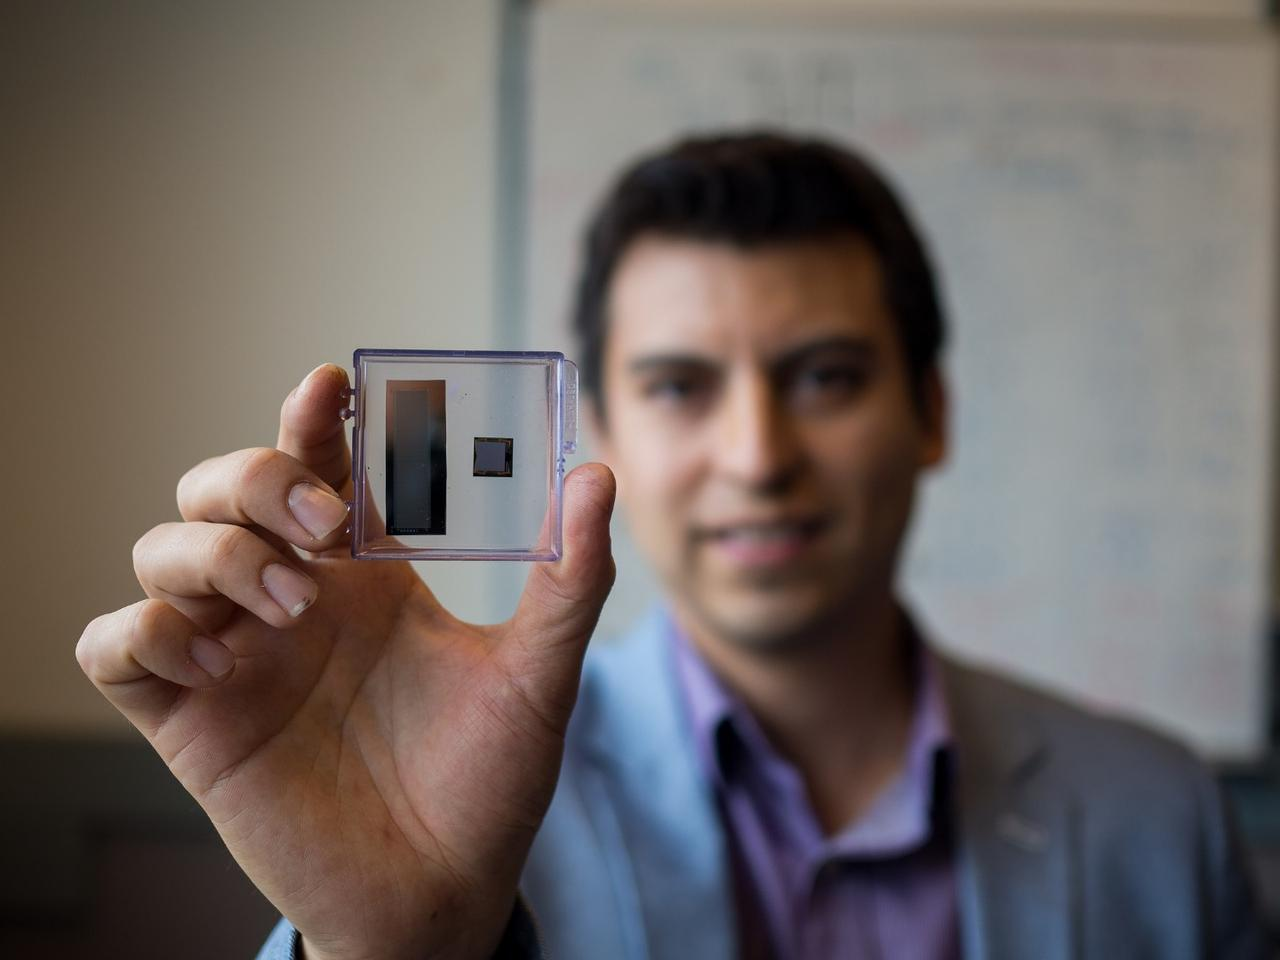 University of British Columbiasay their technology could lower the price of portable ultrasound machinesto as little as $100